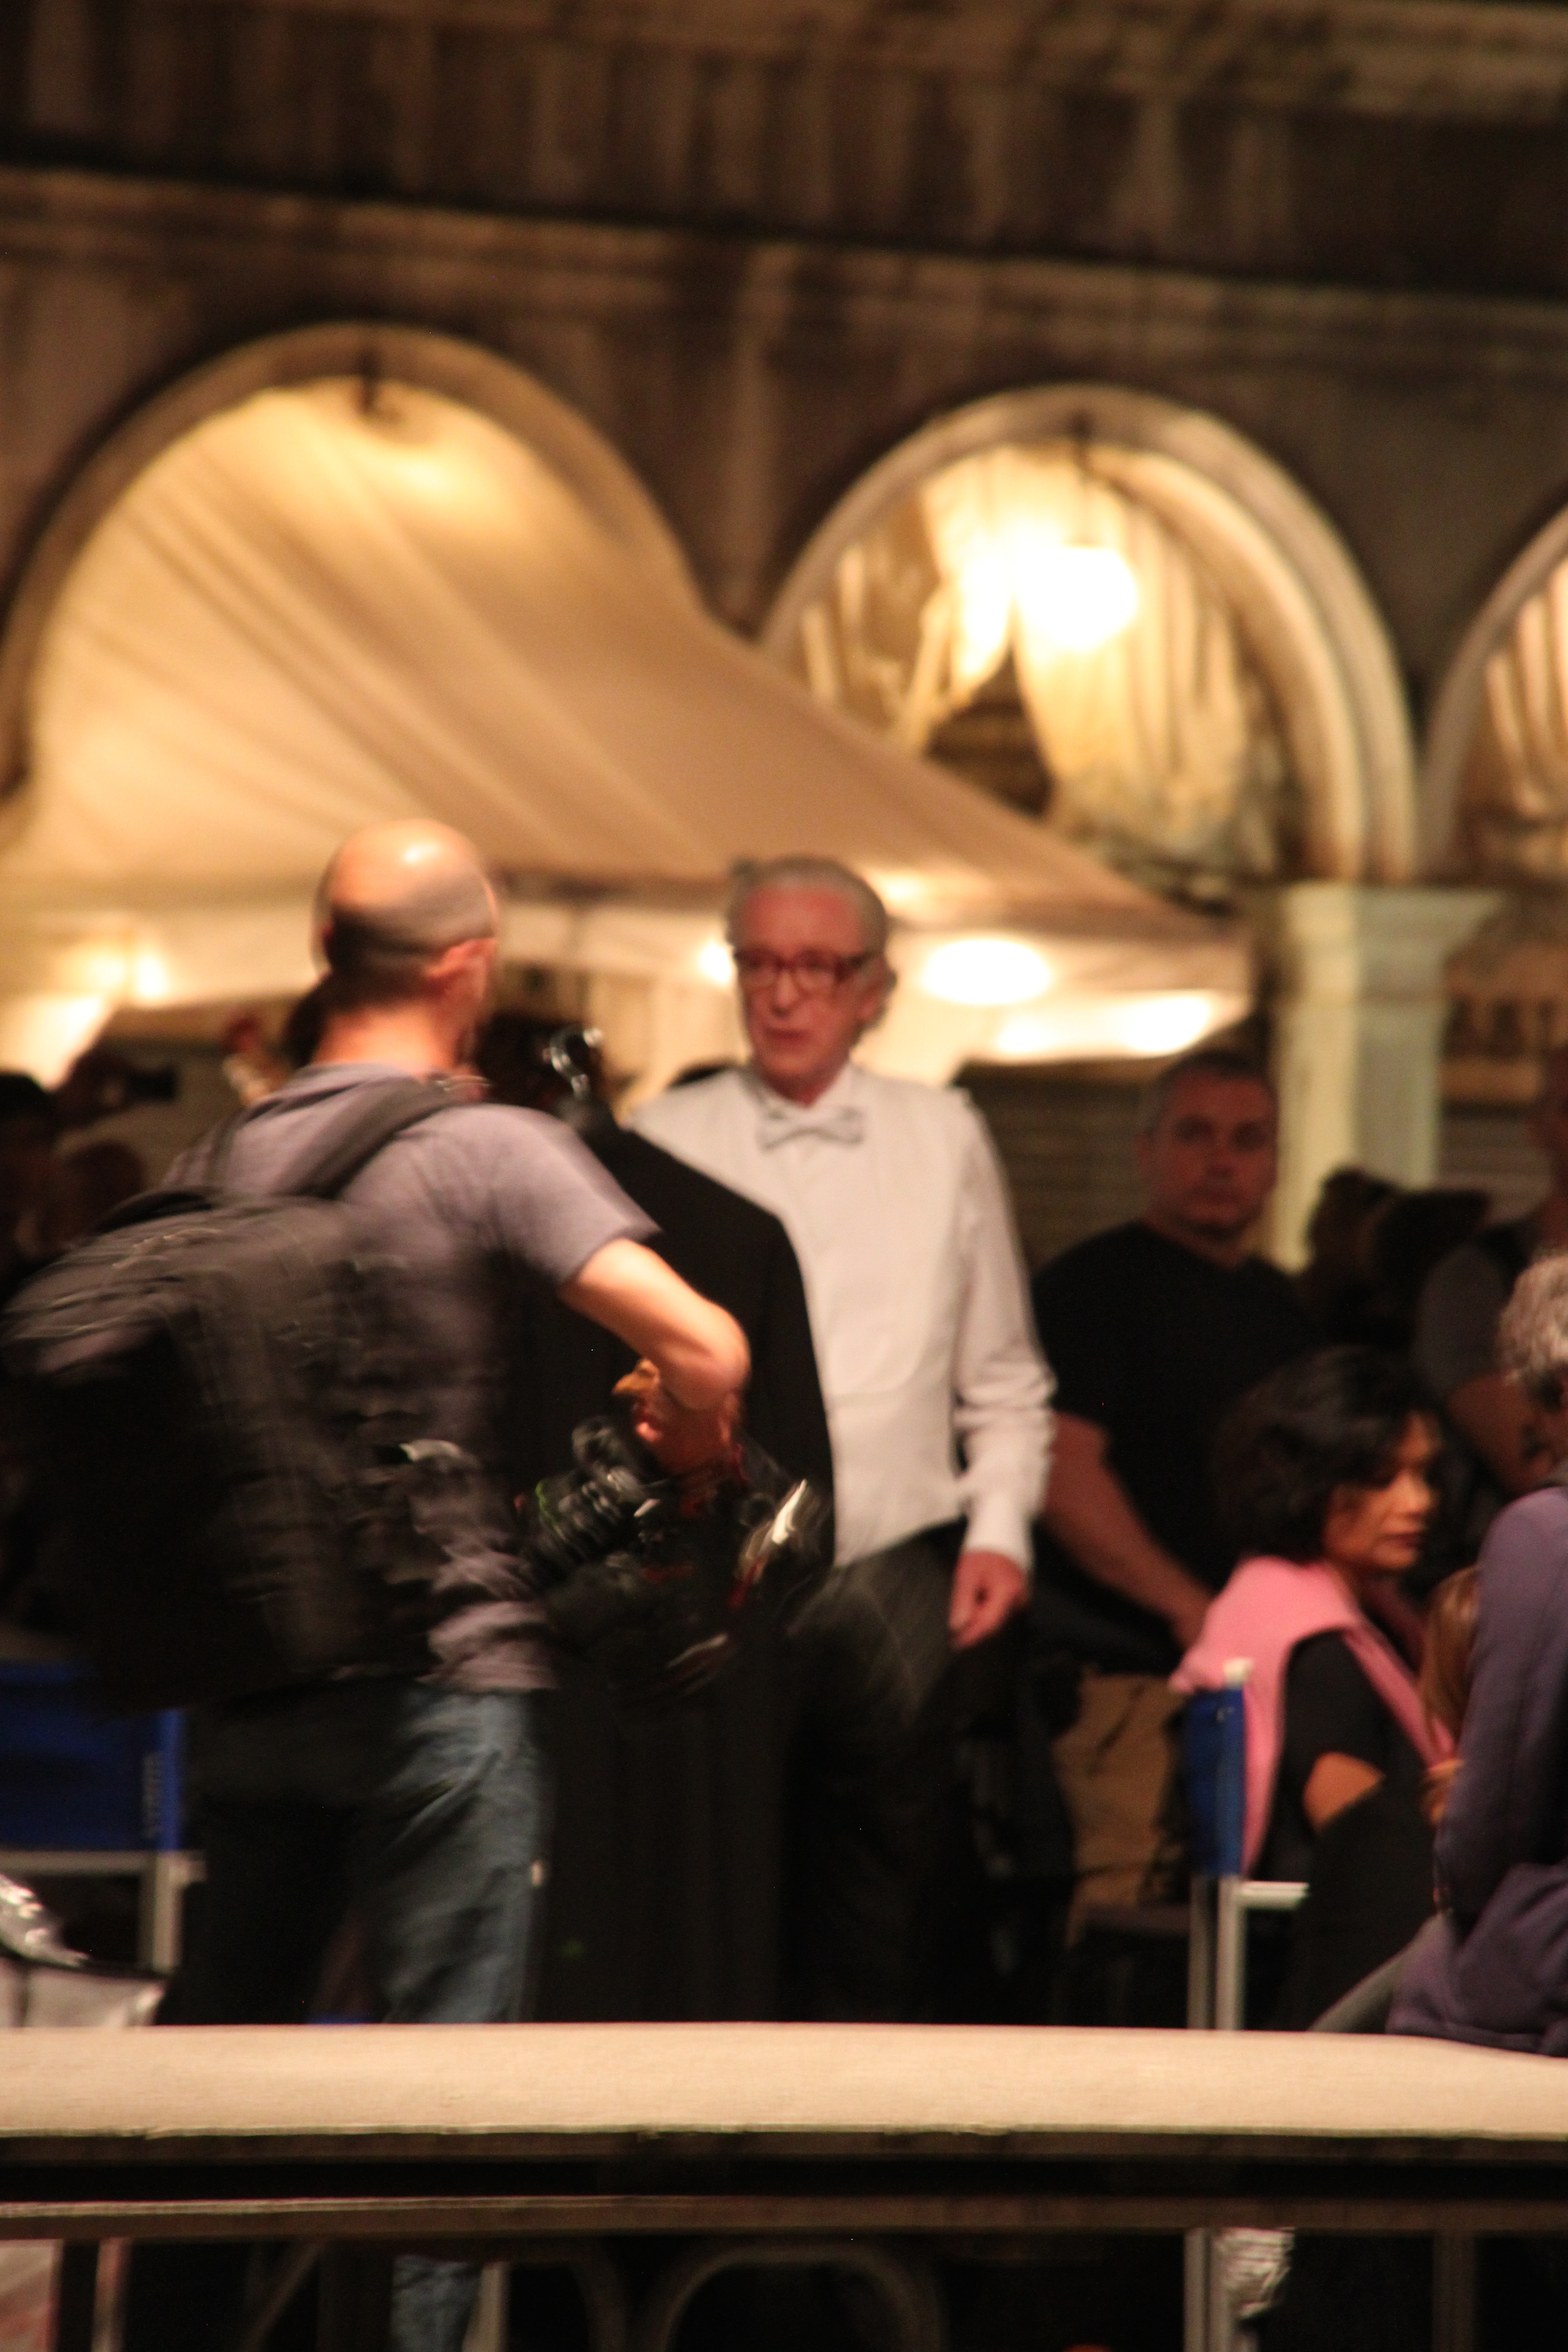 (A slightly fuzzy) Sir Michael Caine suited and booted with a white bow tie ready to shoot the next scene in Il Giovinezza, St Mark's Square, Venice, Italy